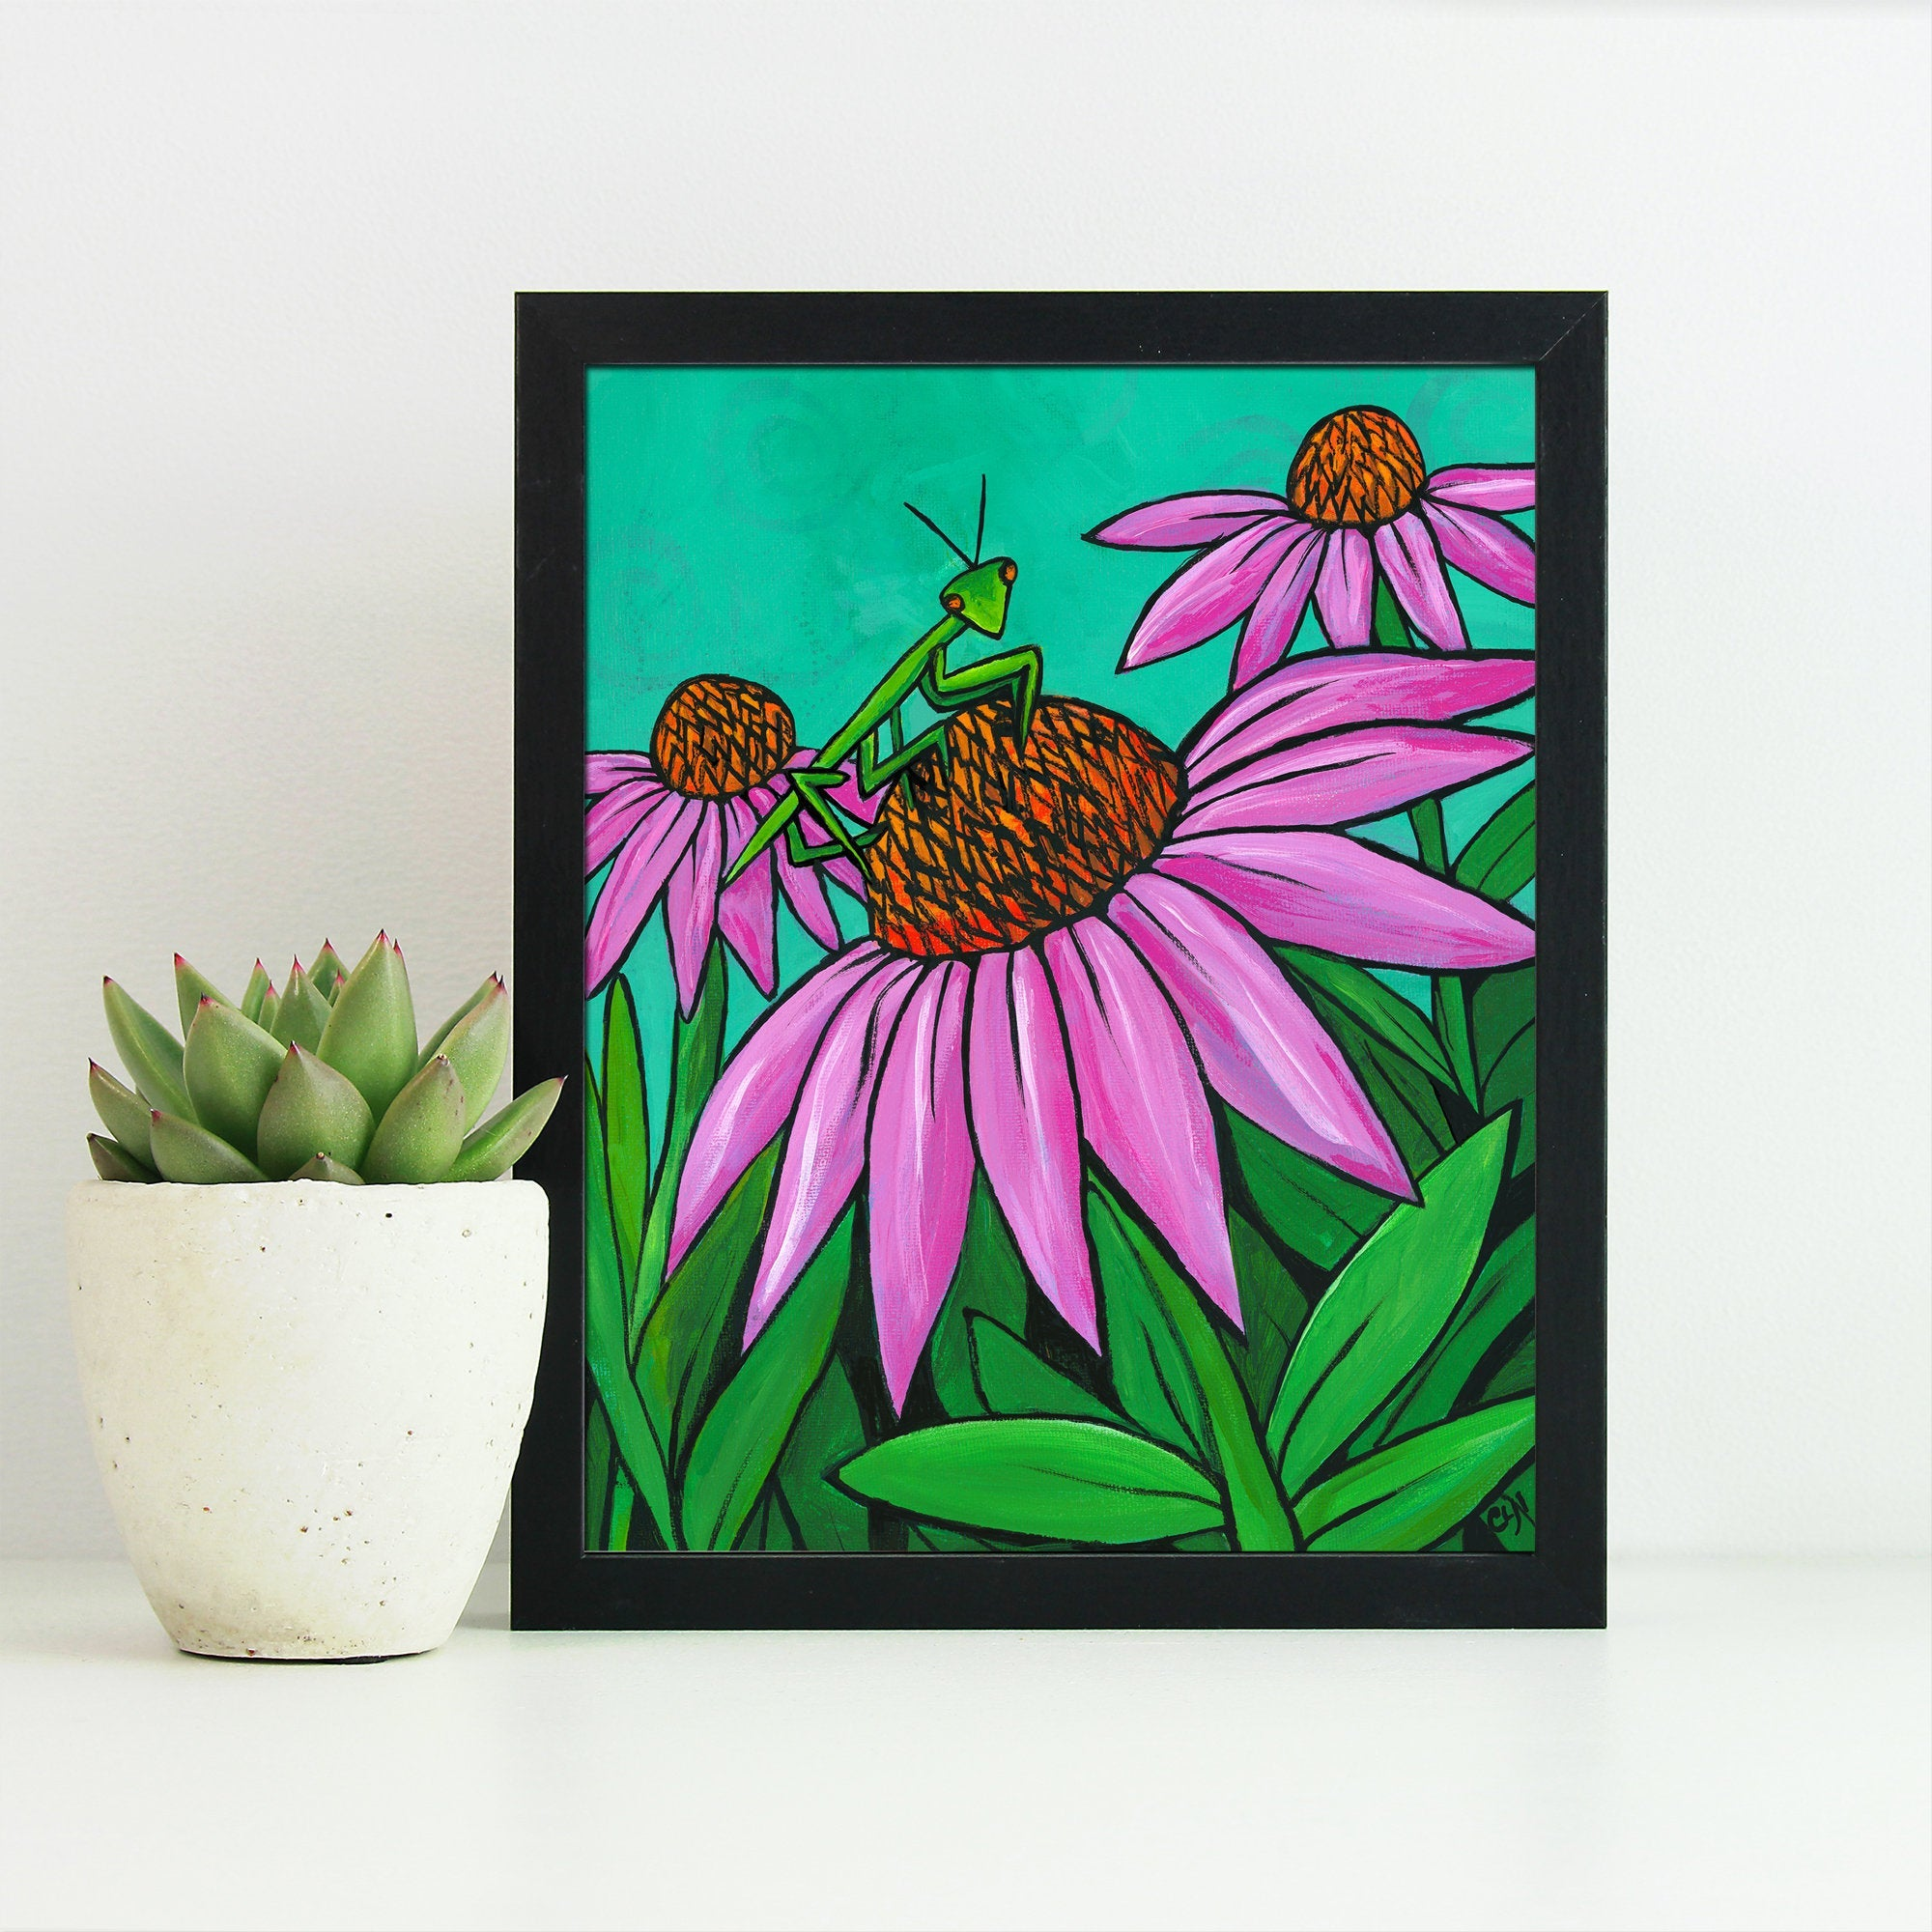 Praying Mantis Art Print - Whimsical Preying Mantis on Coneflower - Colorful 8 x 10 inch Insect Print with Optional Black Mat - Animal Art